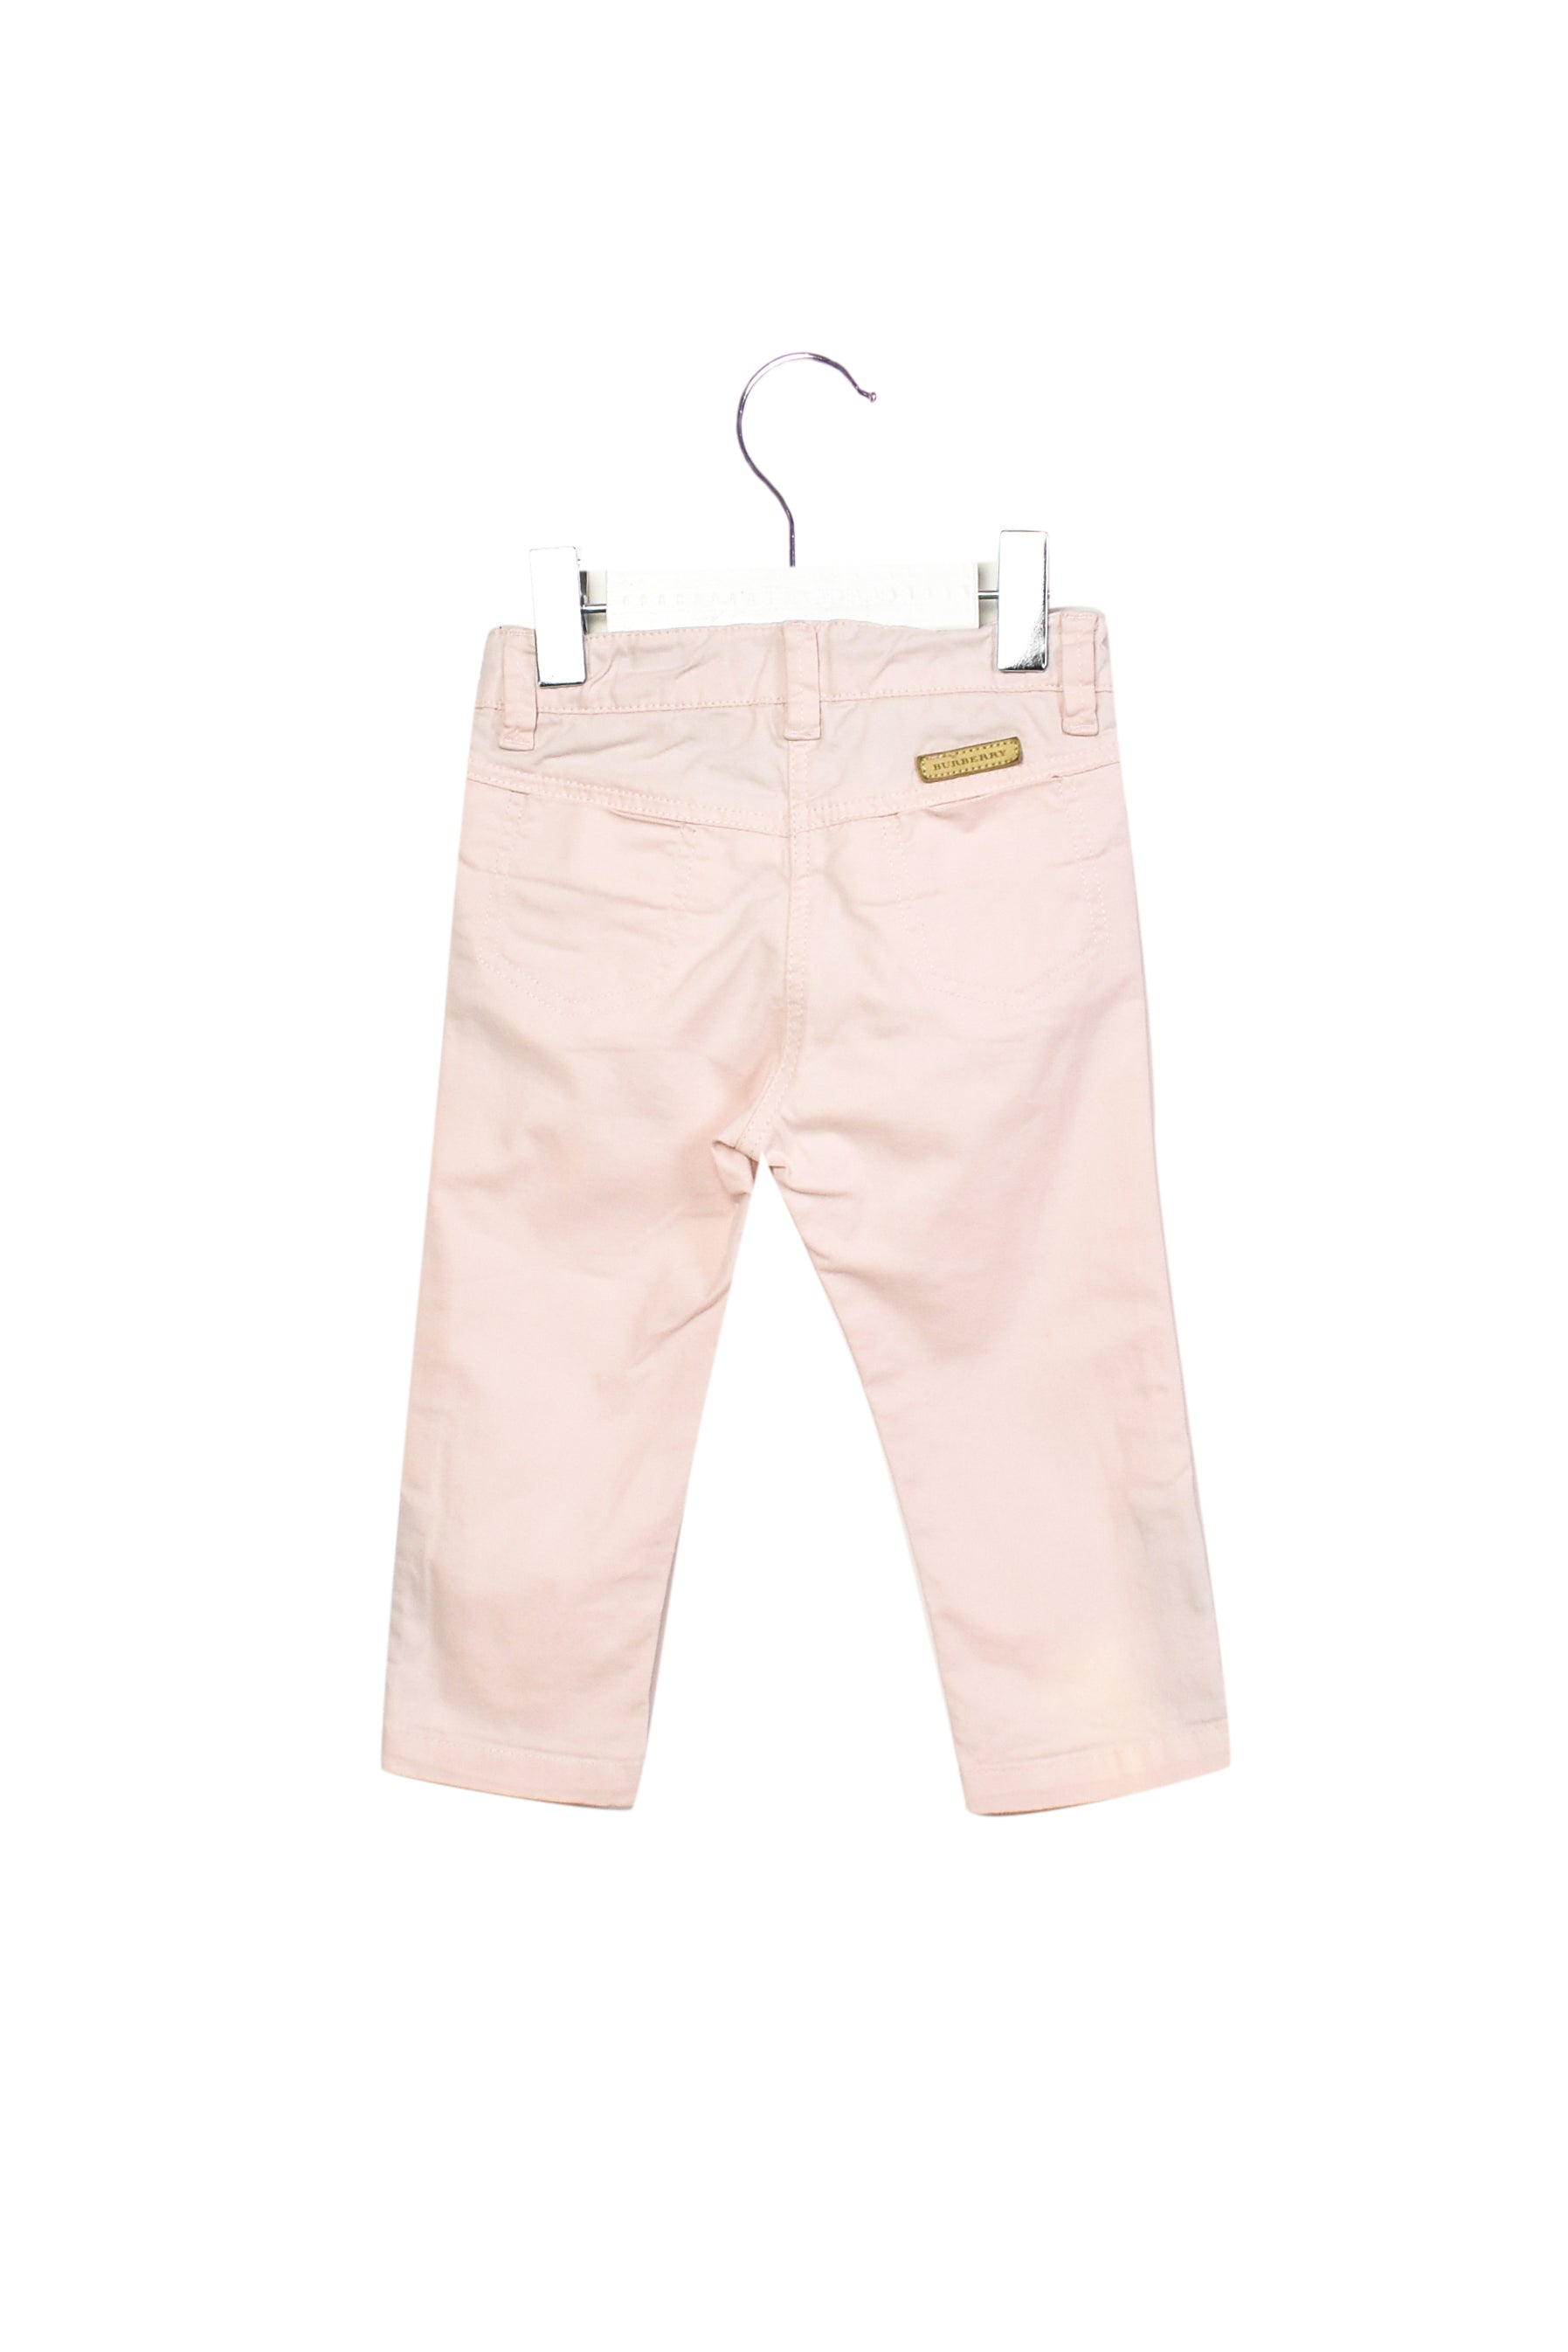 10014315 Burberry Baby ~ Pants 12M at Retykle